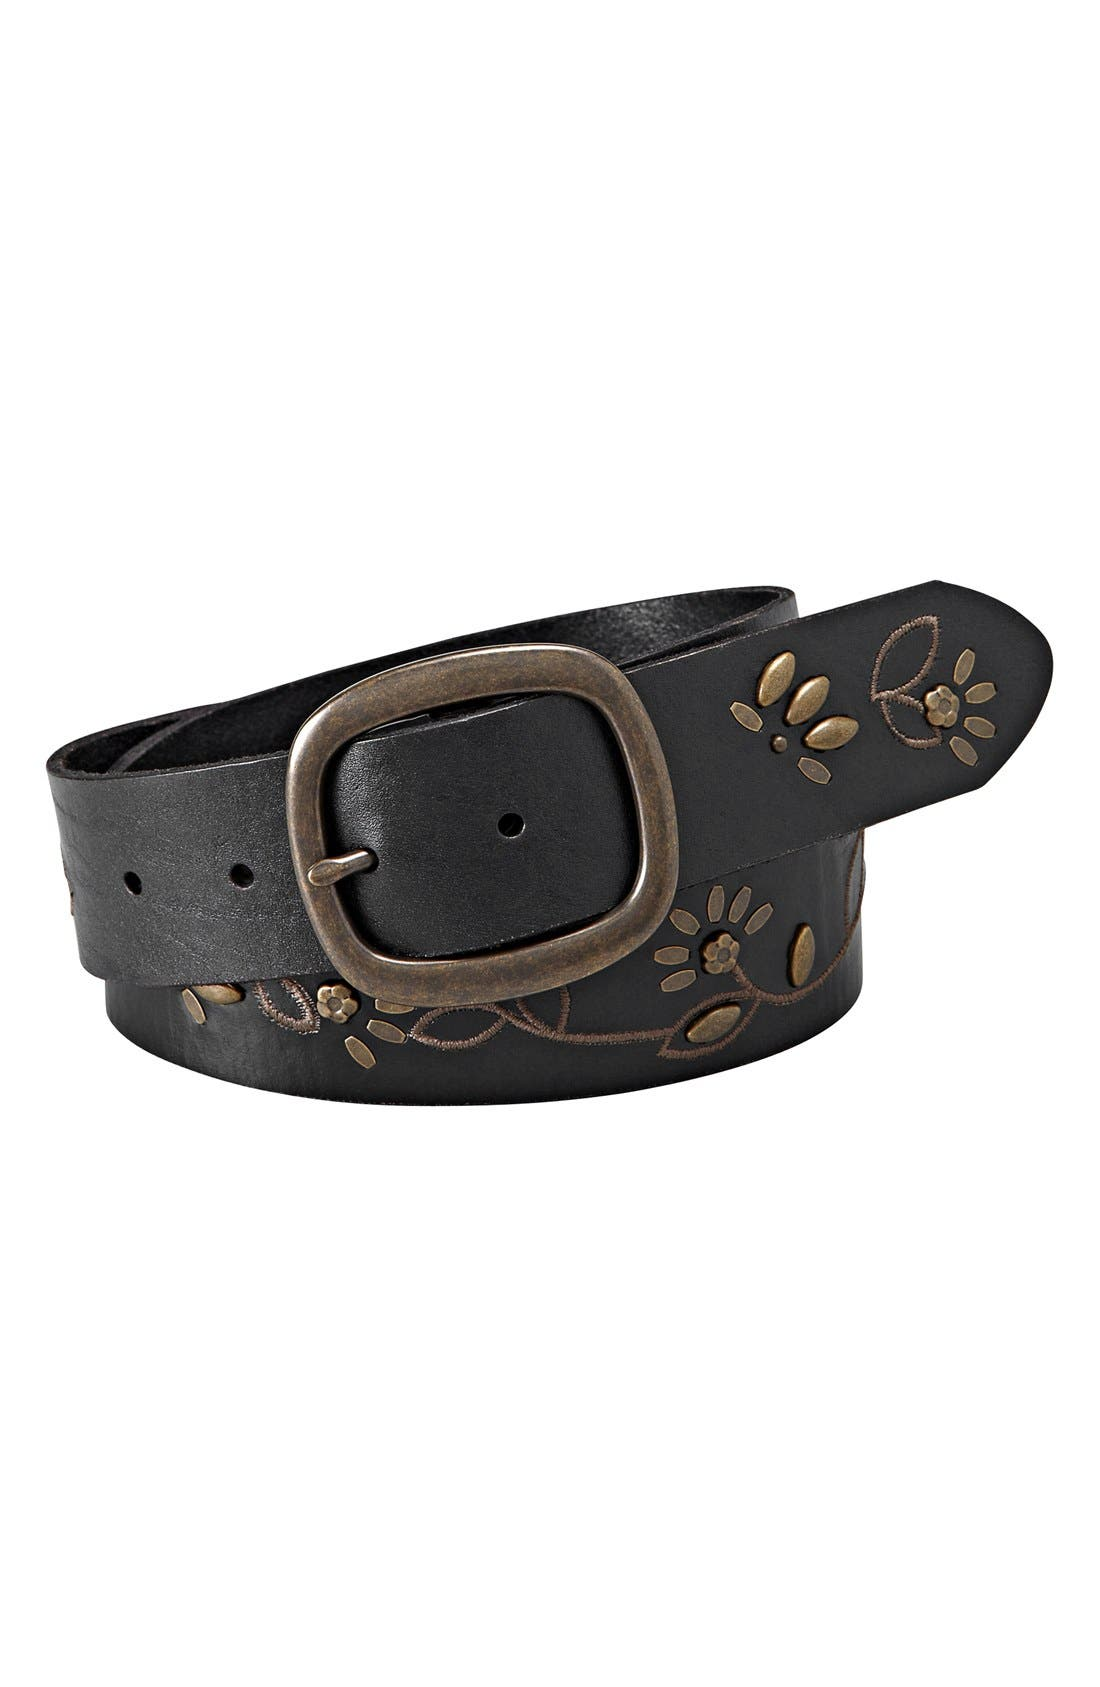 Alternate Image 1 Selected - Fossil Floral Studded Vine Leather Belt